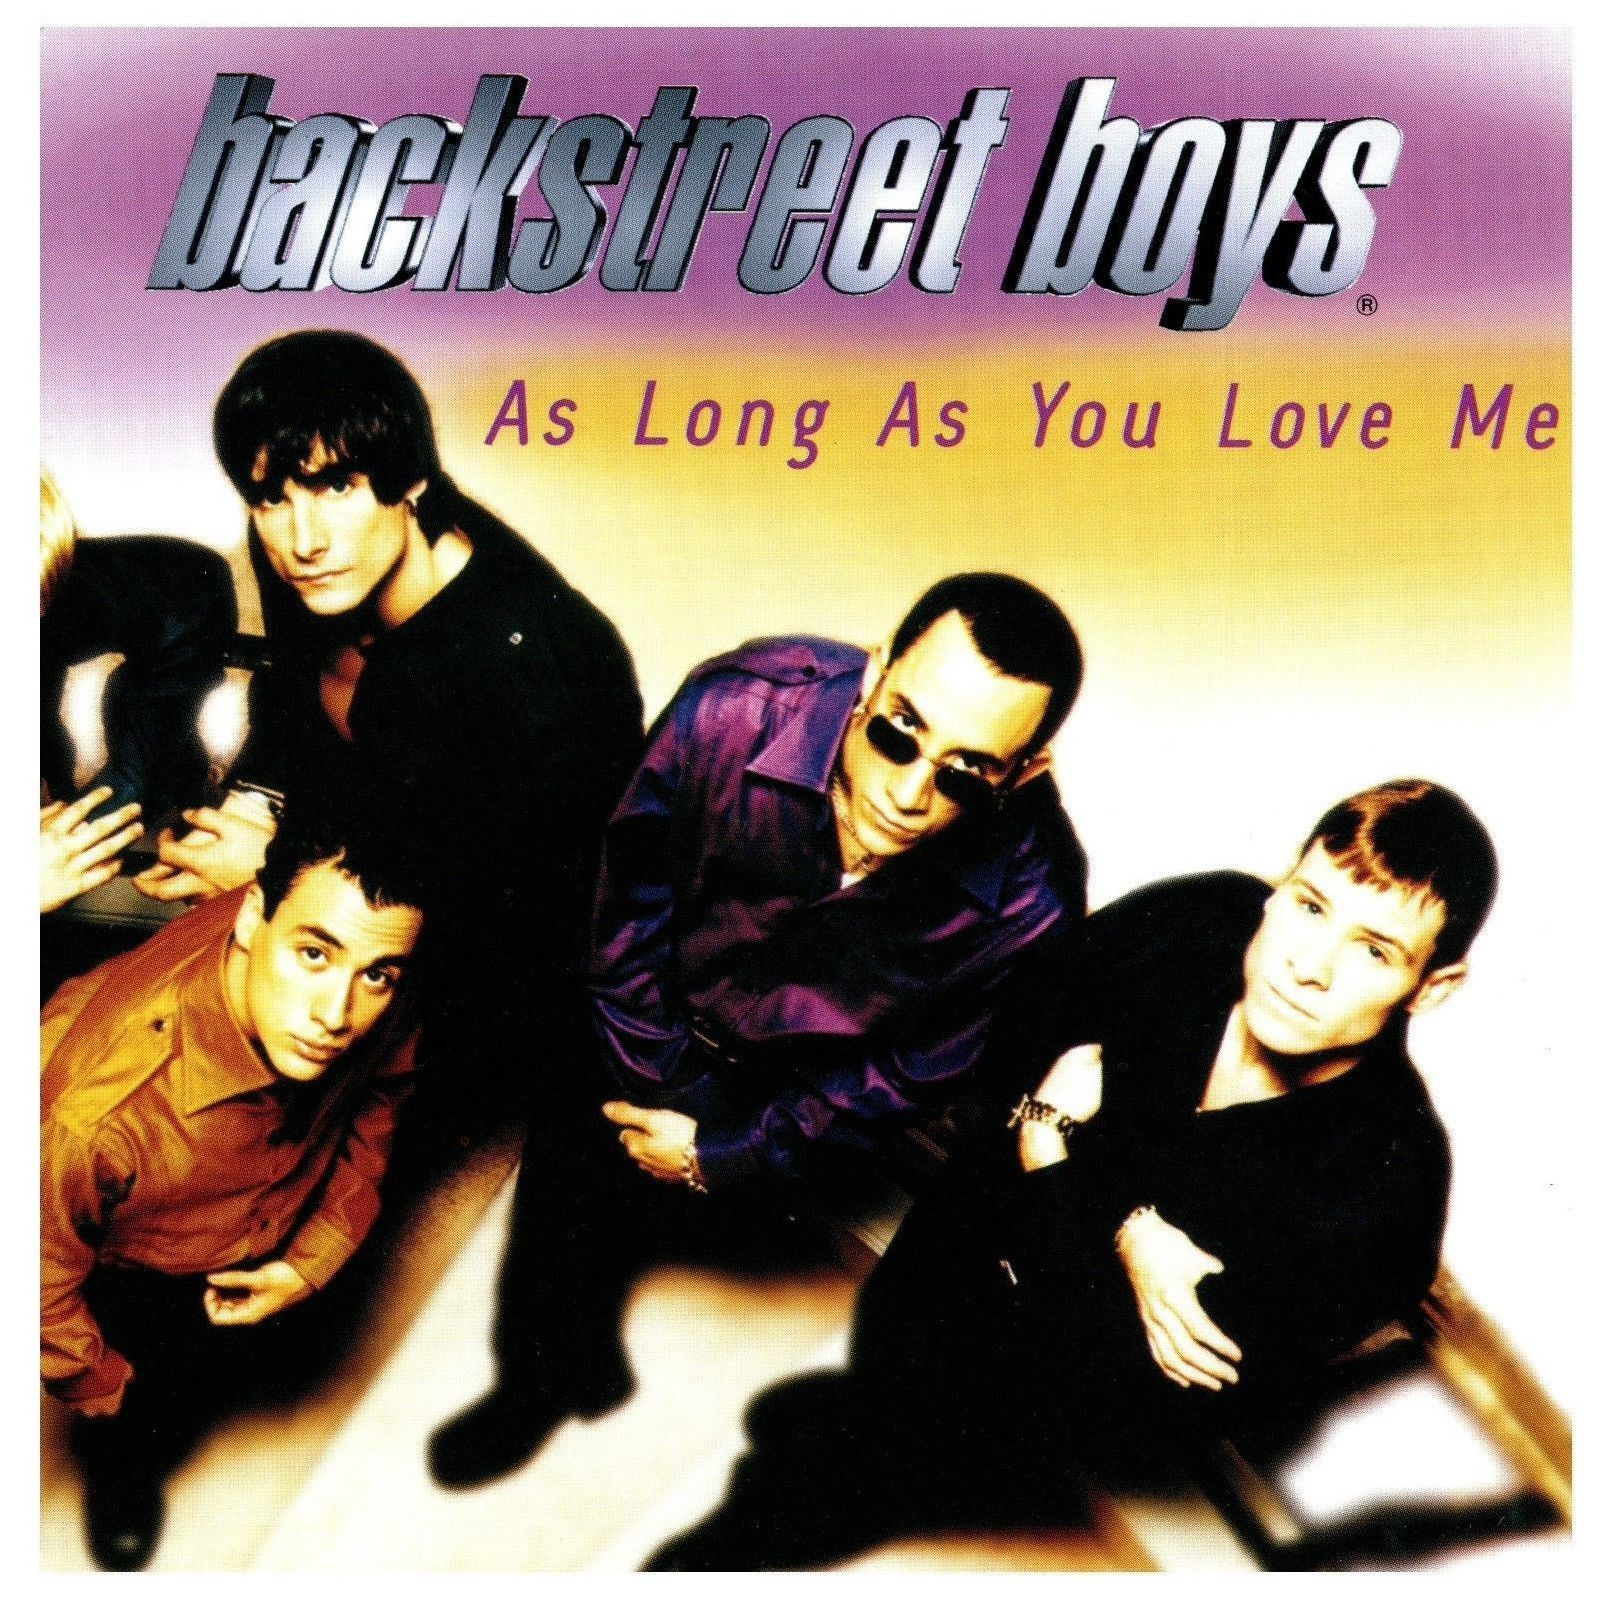 Primary image for As Long As You Love Me by Backstreet Boys CD Single